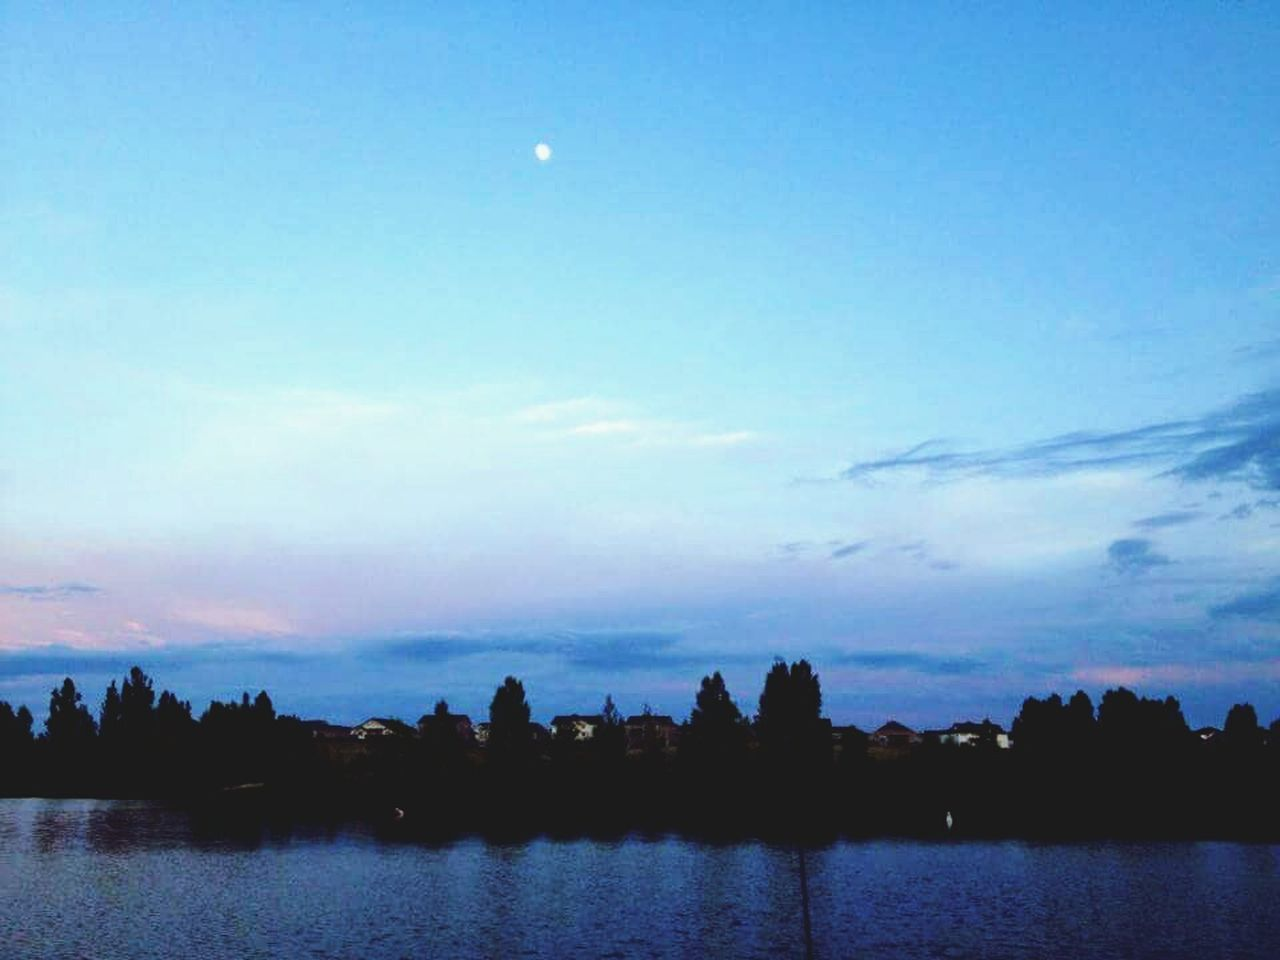 sky, moon, beauty in nature, tranquil scene, nature, silhouette, water, river, no people, scenics, tranquility, outdoors, building exterior, architecture, built structure, tree, night, city